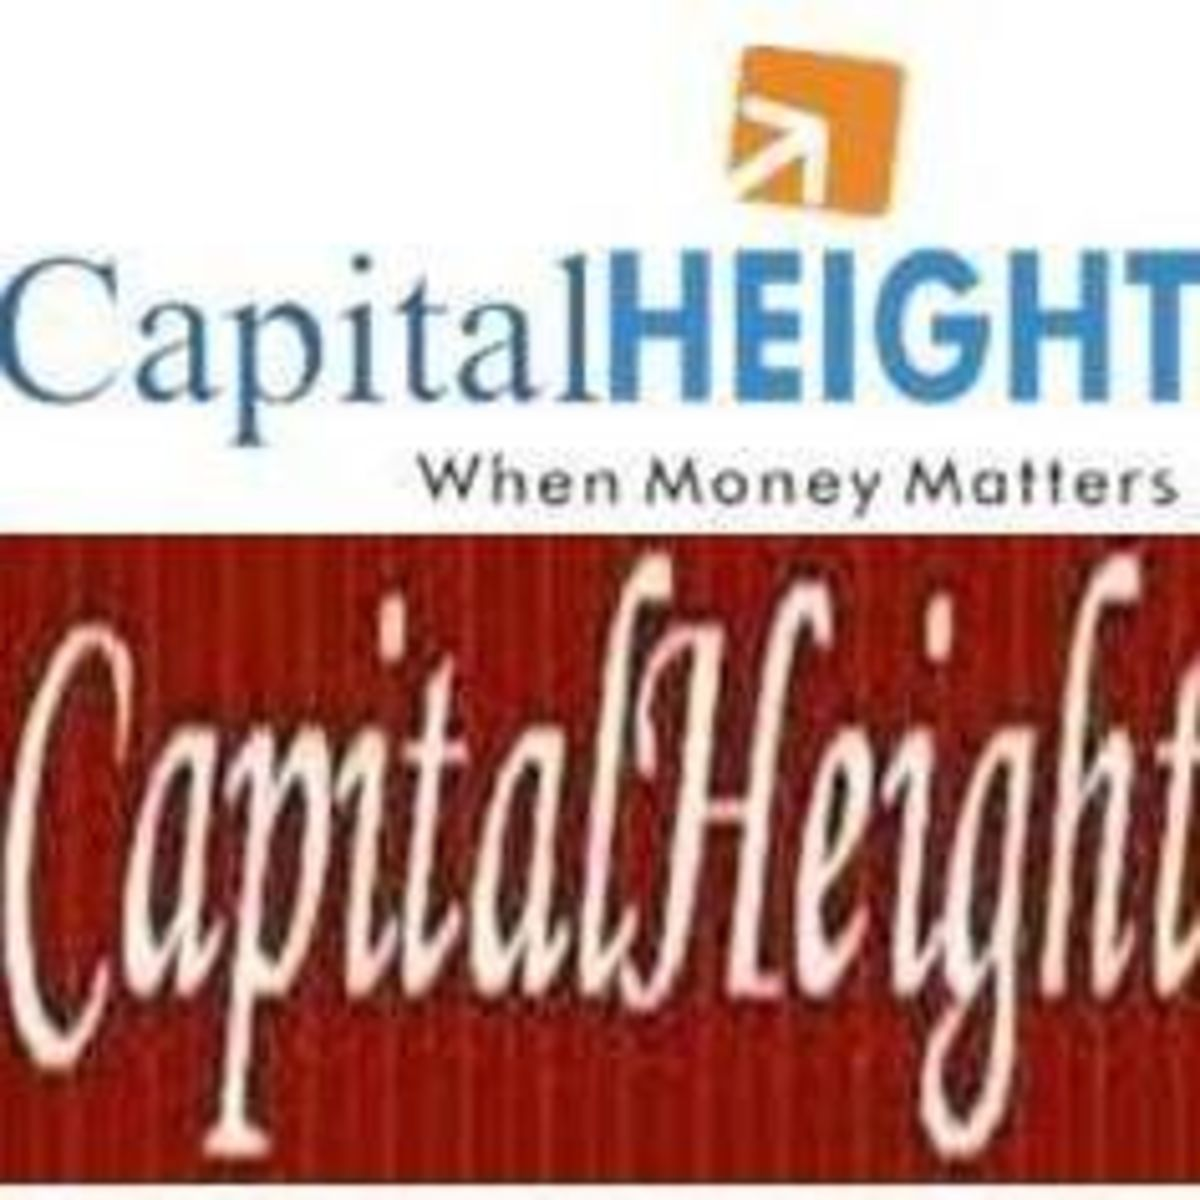 Headline for More Profit with Less Investment by CapitalHeight